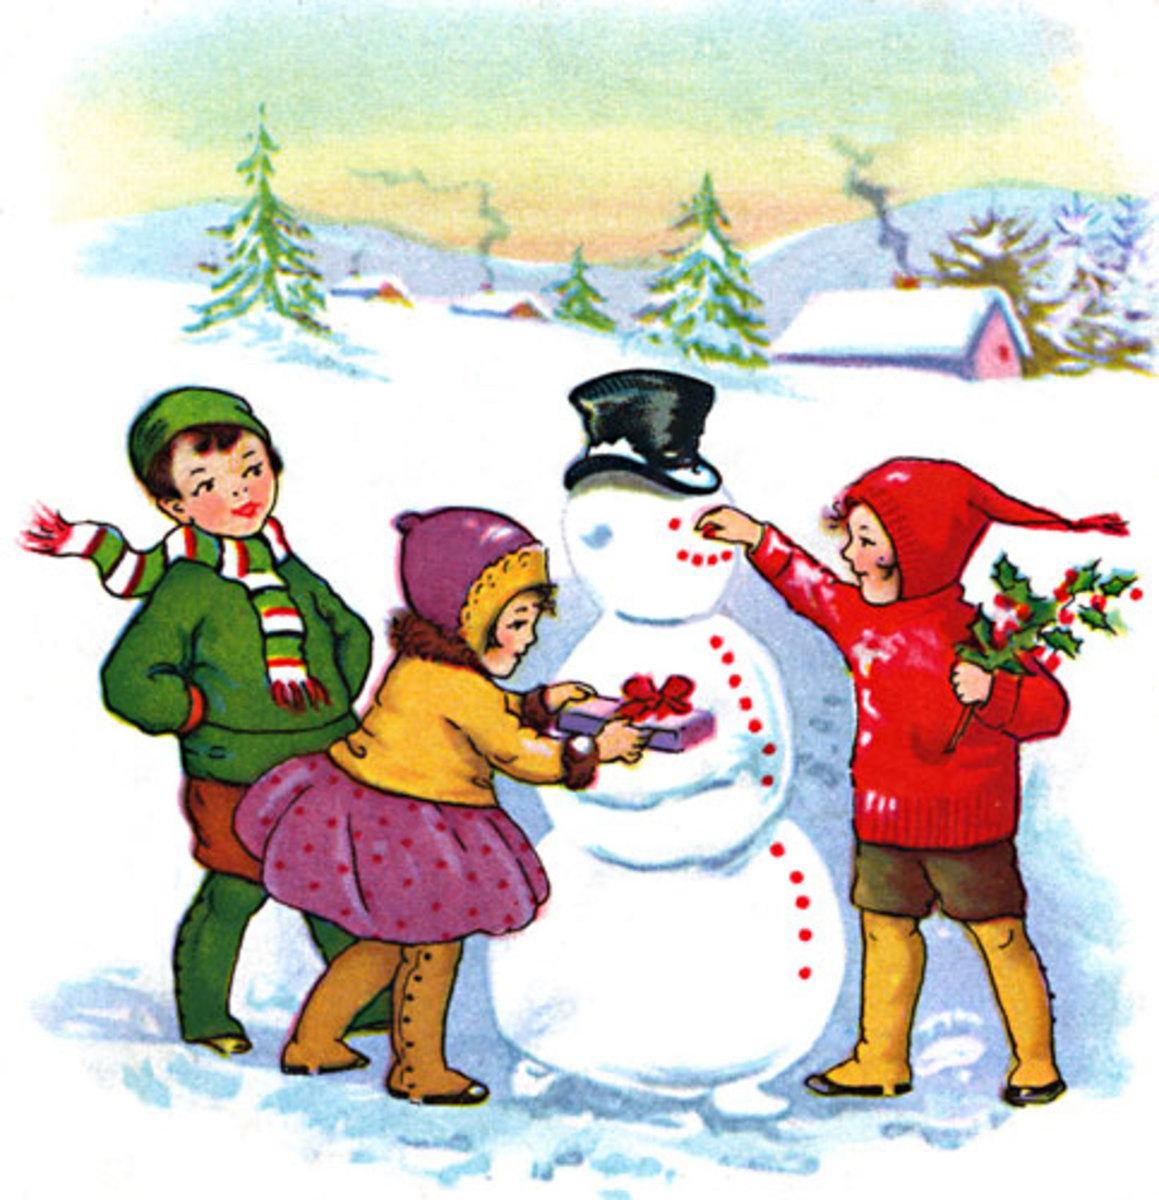 Snowman and Snow Preschool Books